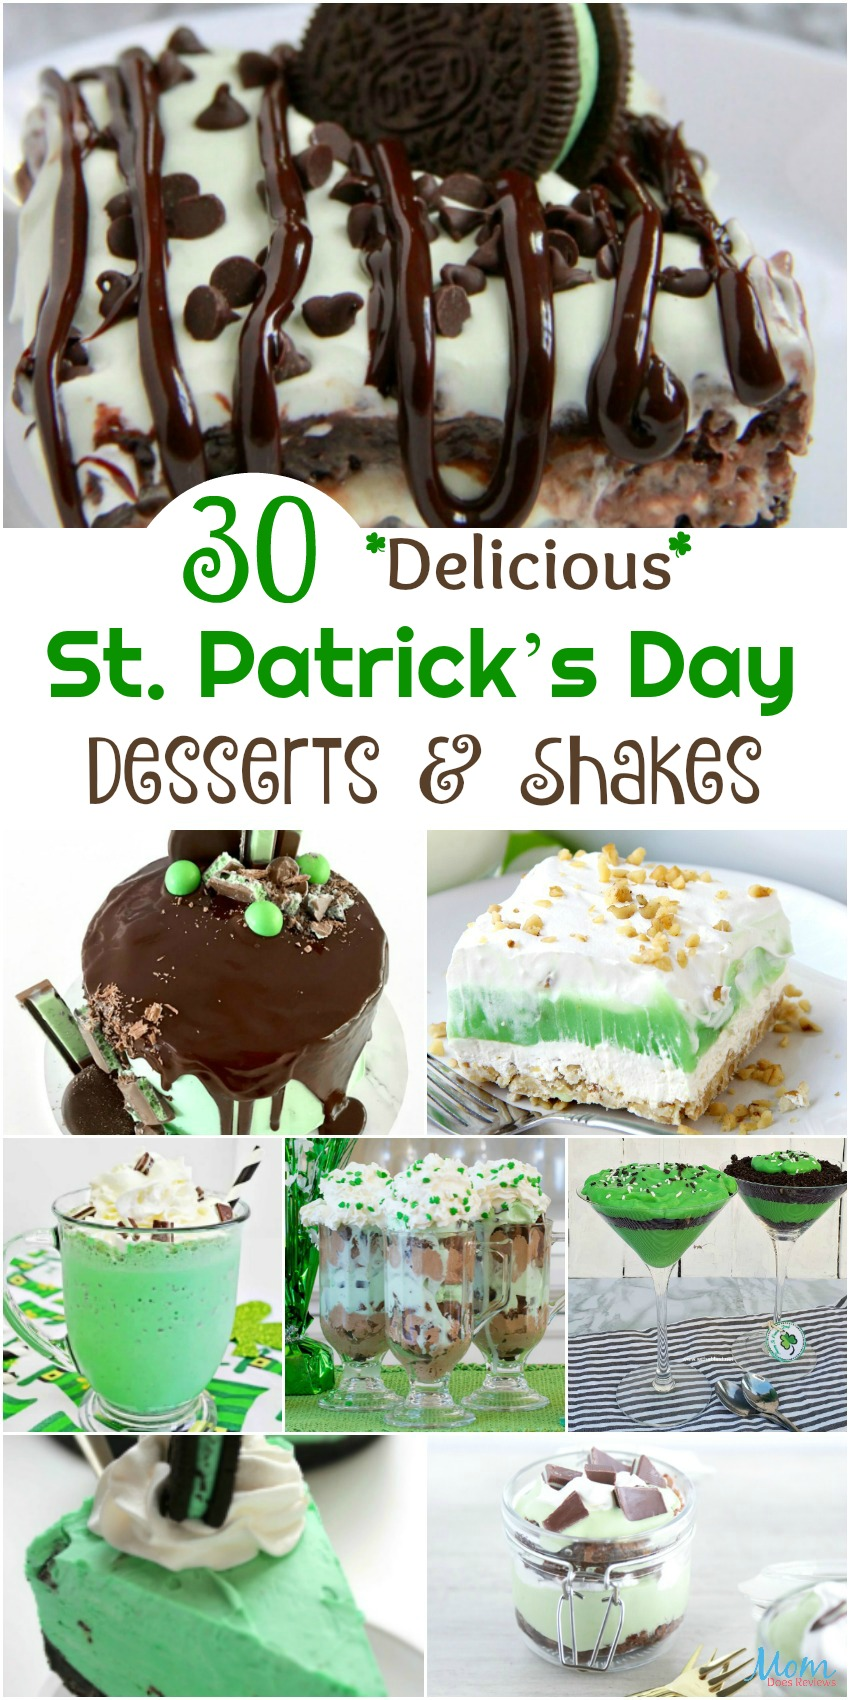 30 Delicious St. Patrick's Day Desserts & Shakes You Will Love  #desserts #sweets #recipes #shakes #stpattysday